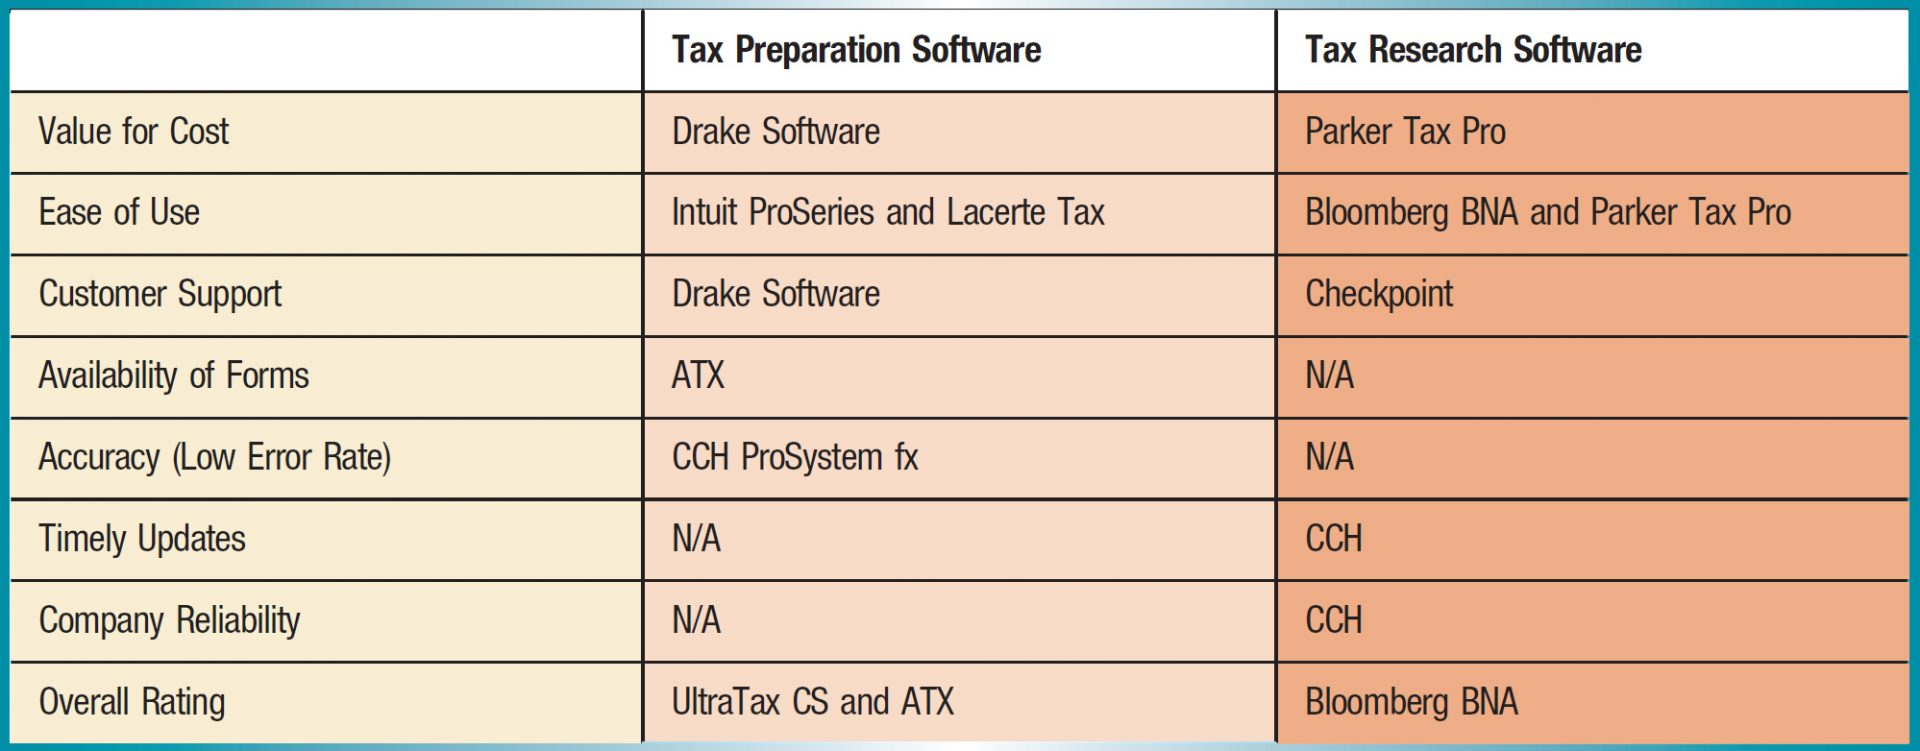 Tax Preparation Software; Tax Research Software Value for Cost; Drake Software; Parker Tax Pro Ease of Use; Intuit ProSeries and Lacerte Tax; Bloomberg BNA and Parker Tax Pro Customer Support; Drake Software; Checkpoint Availability of Forms; ATX; N/A Accuracy (Low Error Rate); CCH ProSystem fx; N/A Timely Updates; N/A; CCH Company Reliability; N/A; CCH Overall Rating; UltraTax CS and ATX; Bloomberg BNA